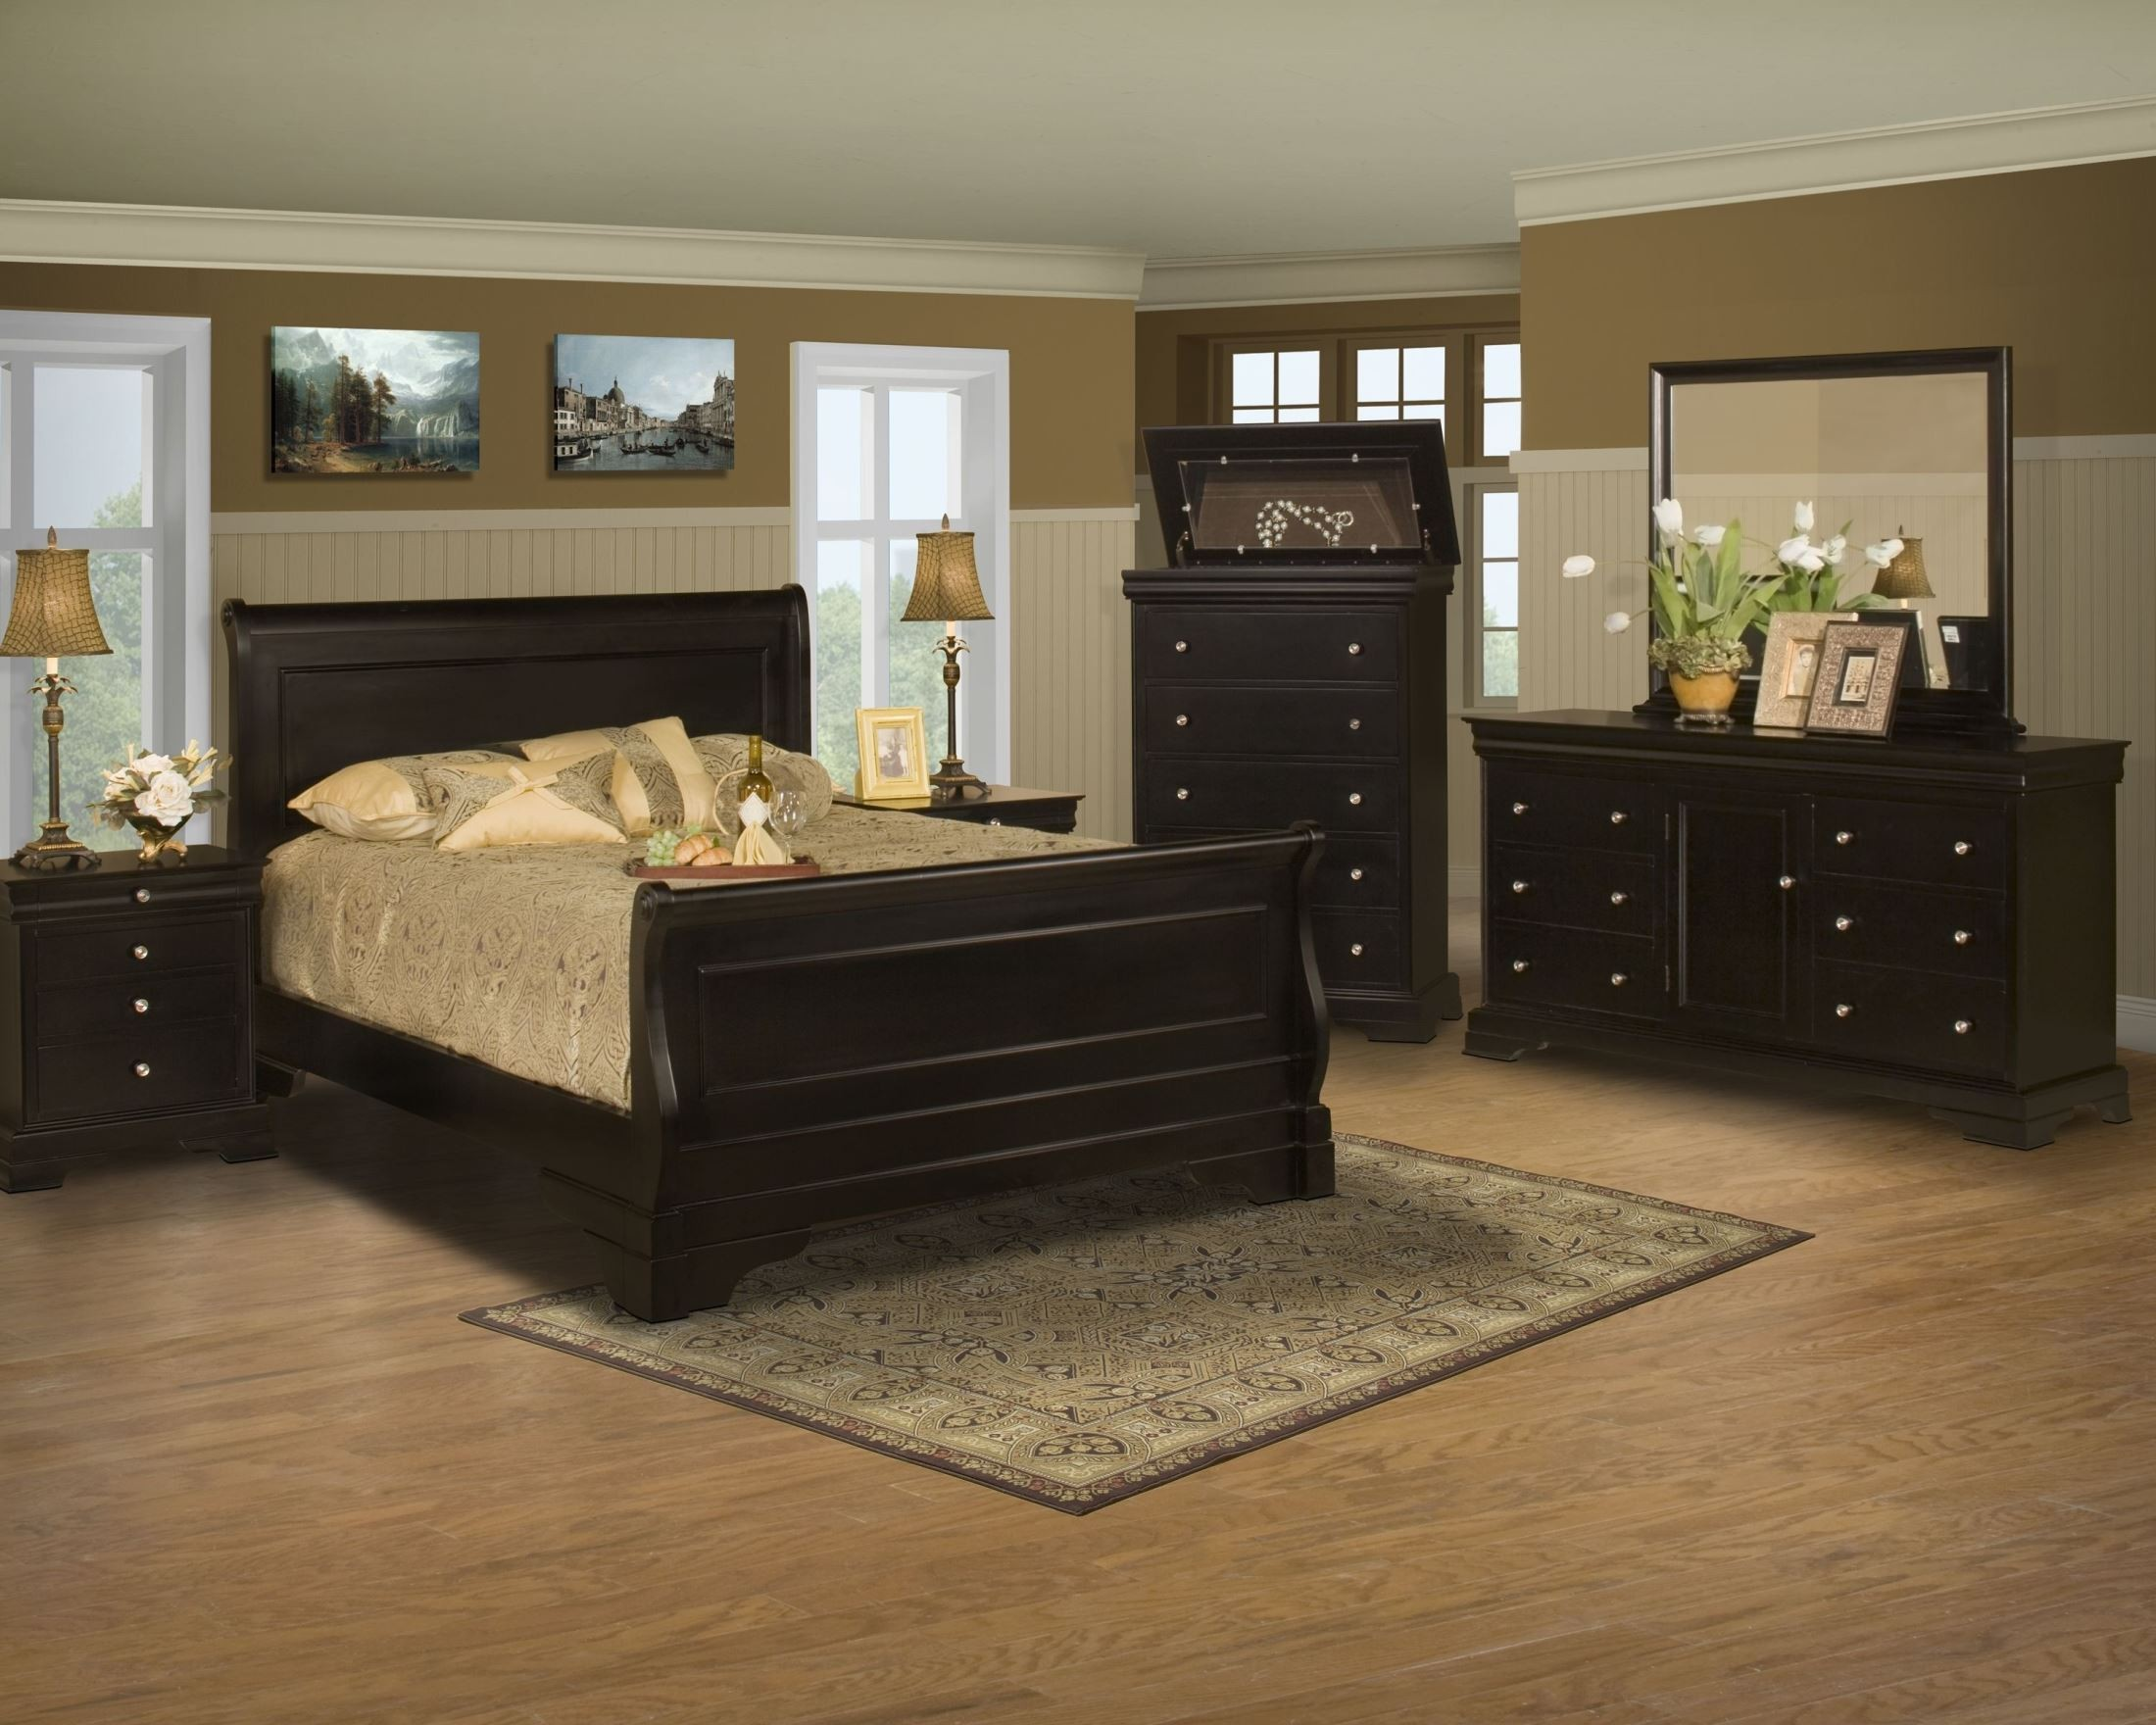 Belle Rose Black Cherry Sleigh Bedroom Set from New ...